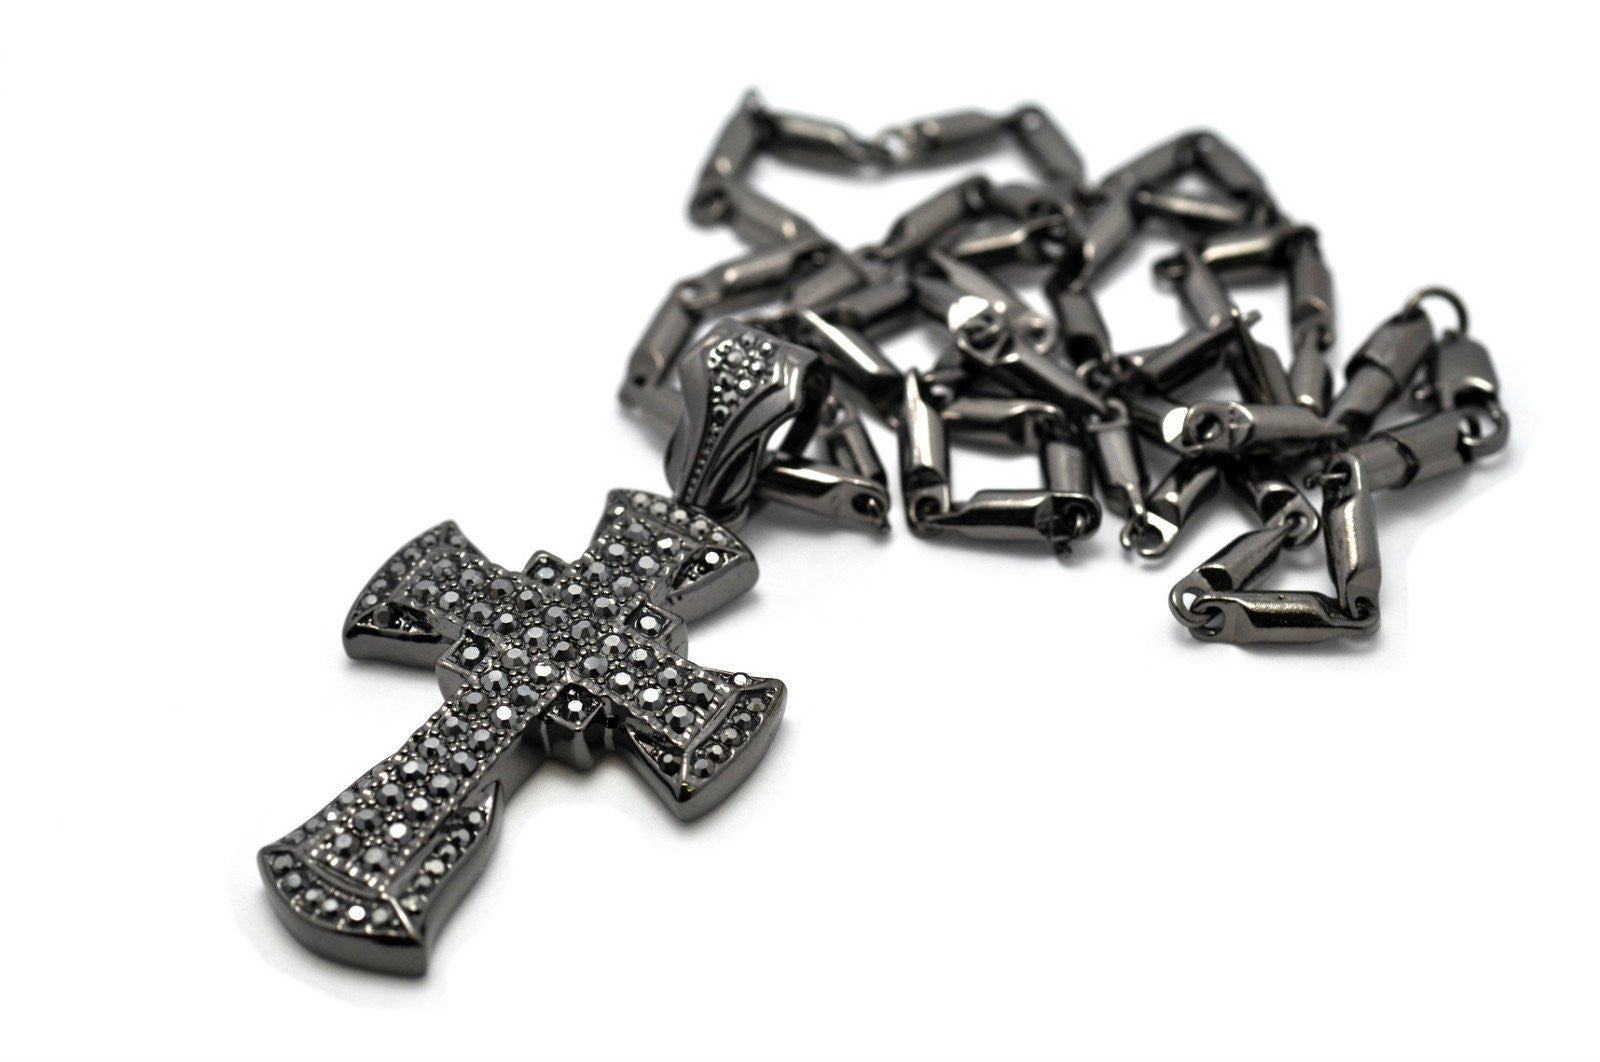 Small Black 3D Celtic Cross Pendant with a 24 Inch Shamballah Glass Beaded Necklace Iced Out Chain